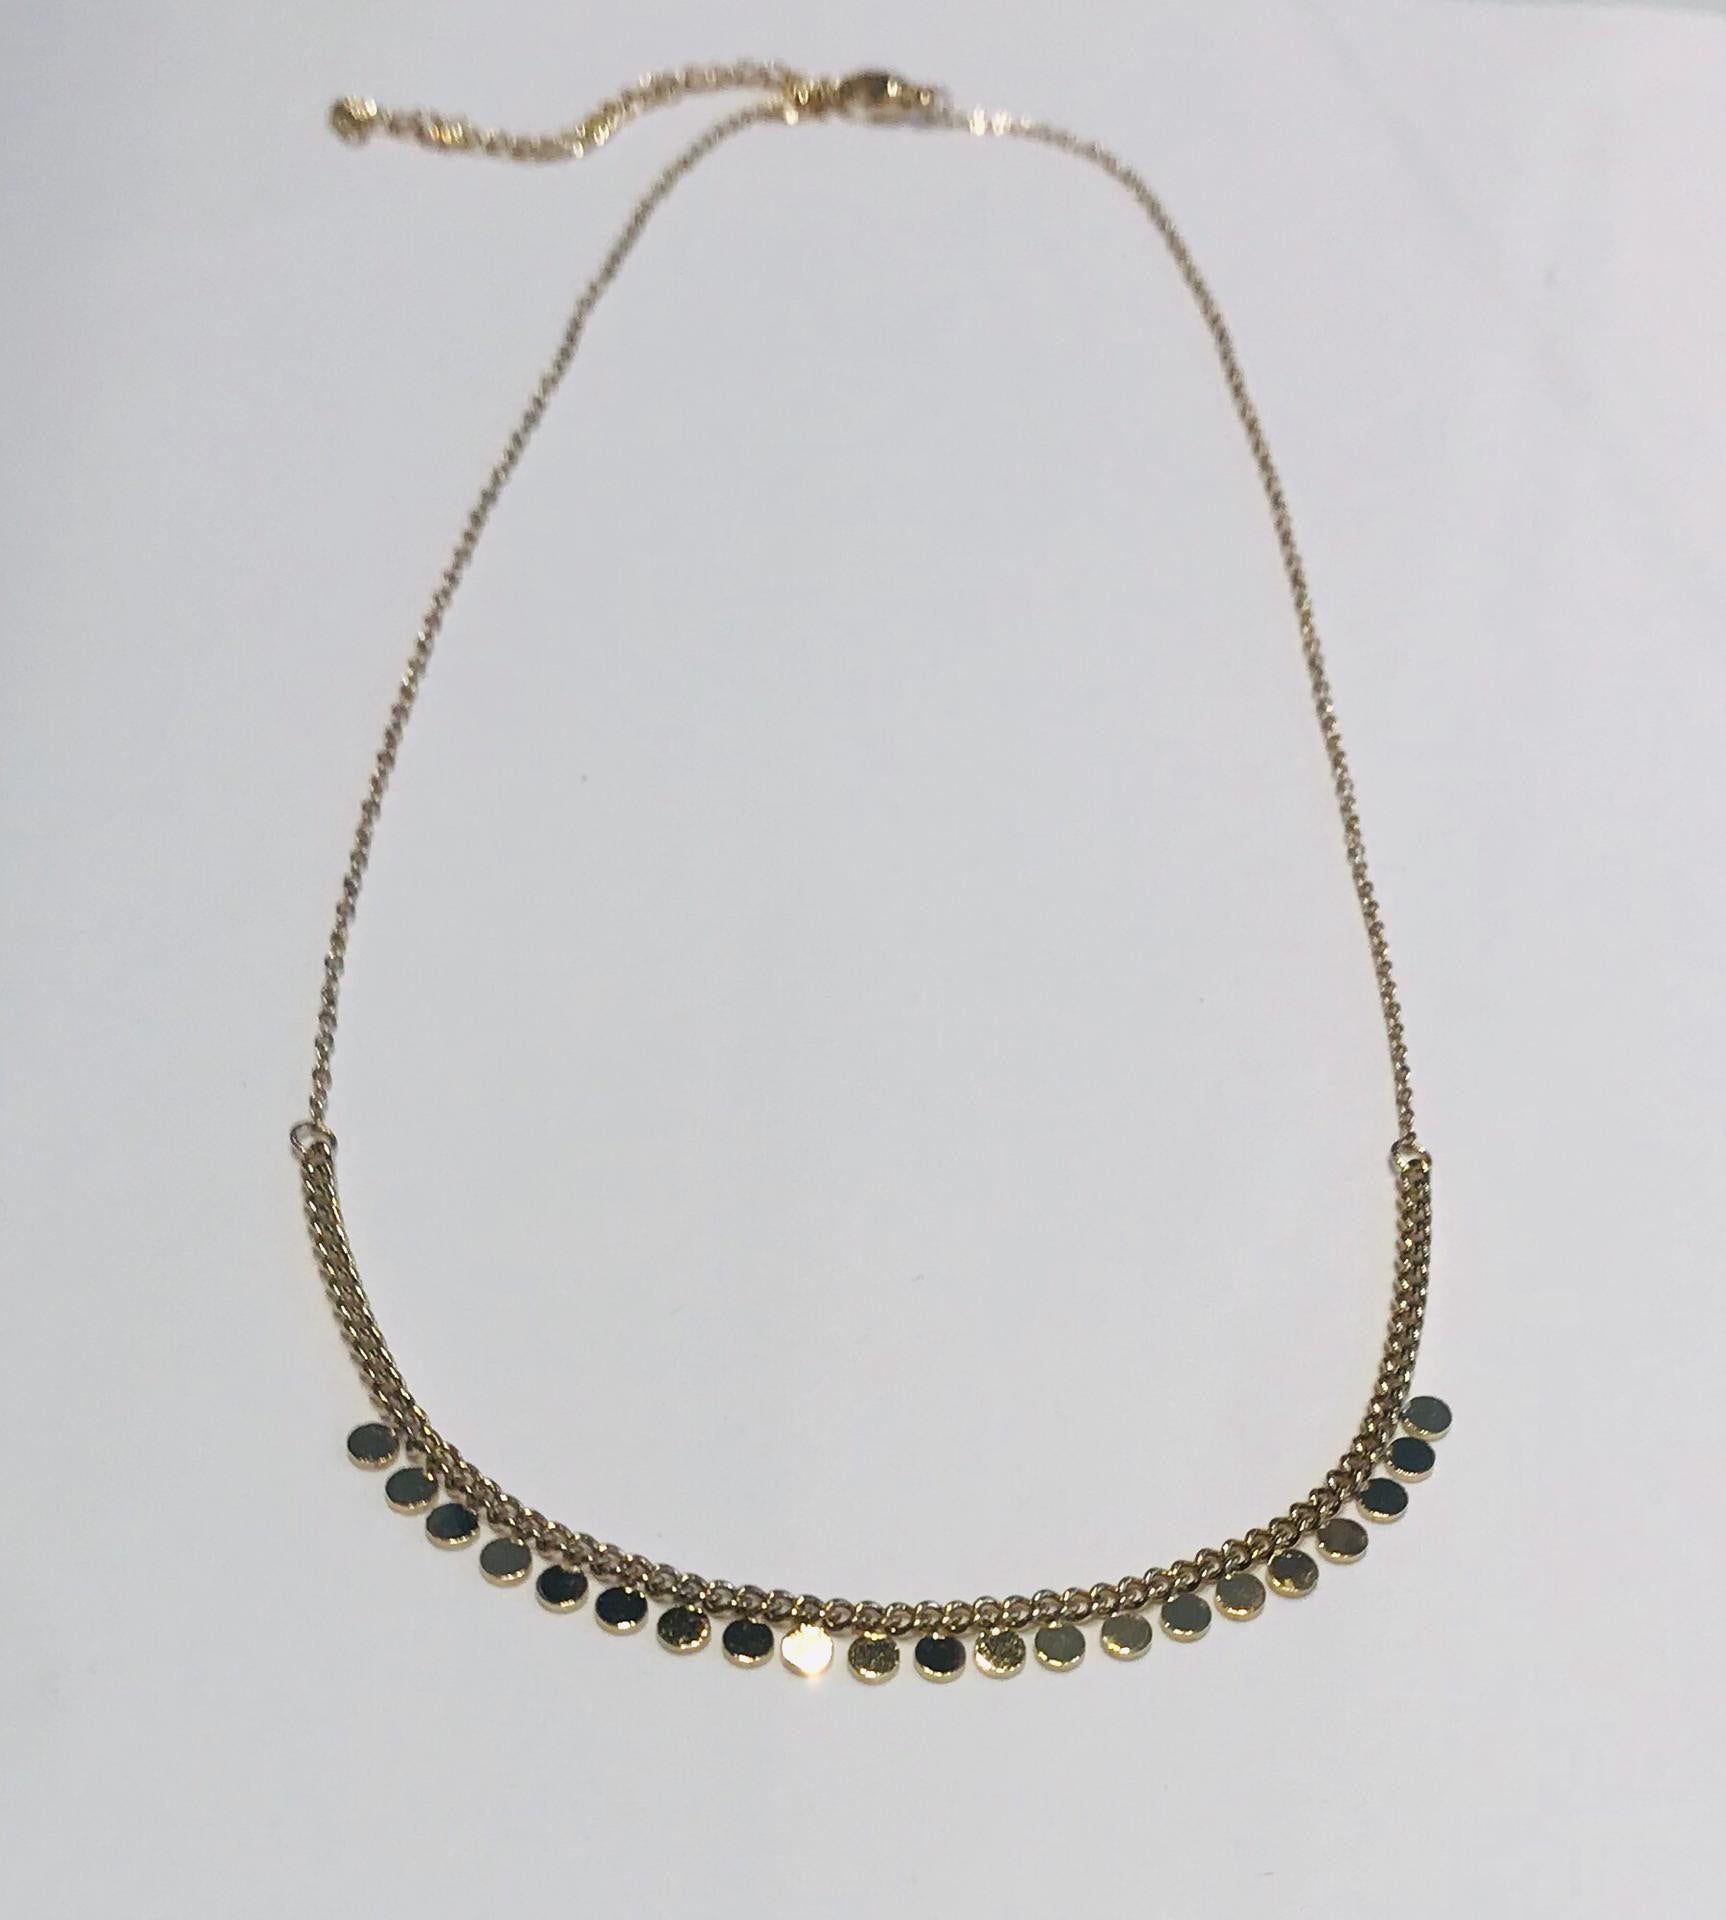 Steel necklace with small circle pendants by SAM&CEL.